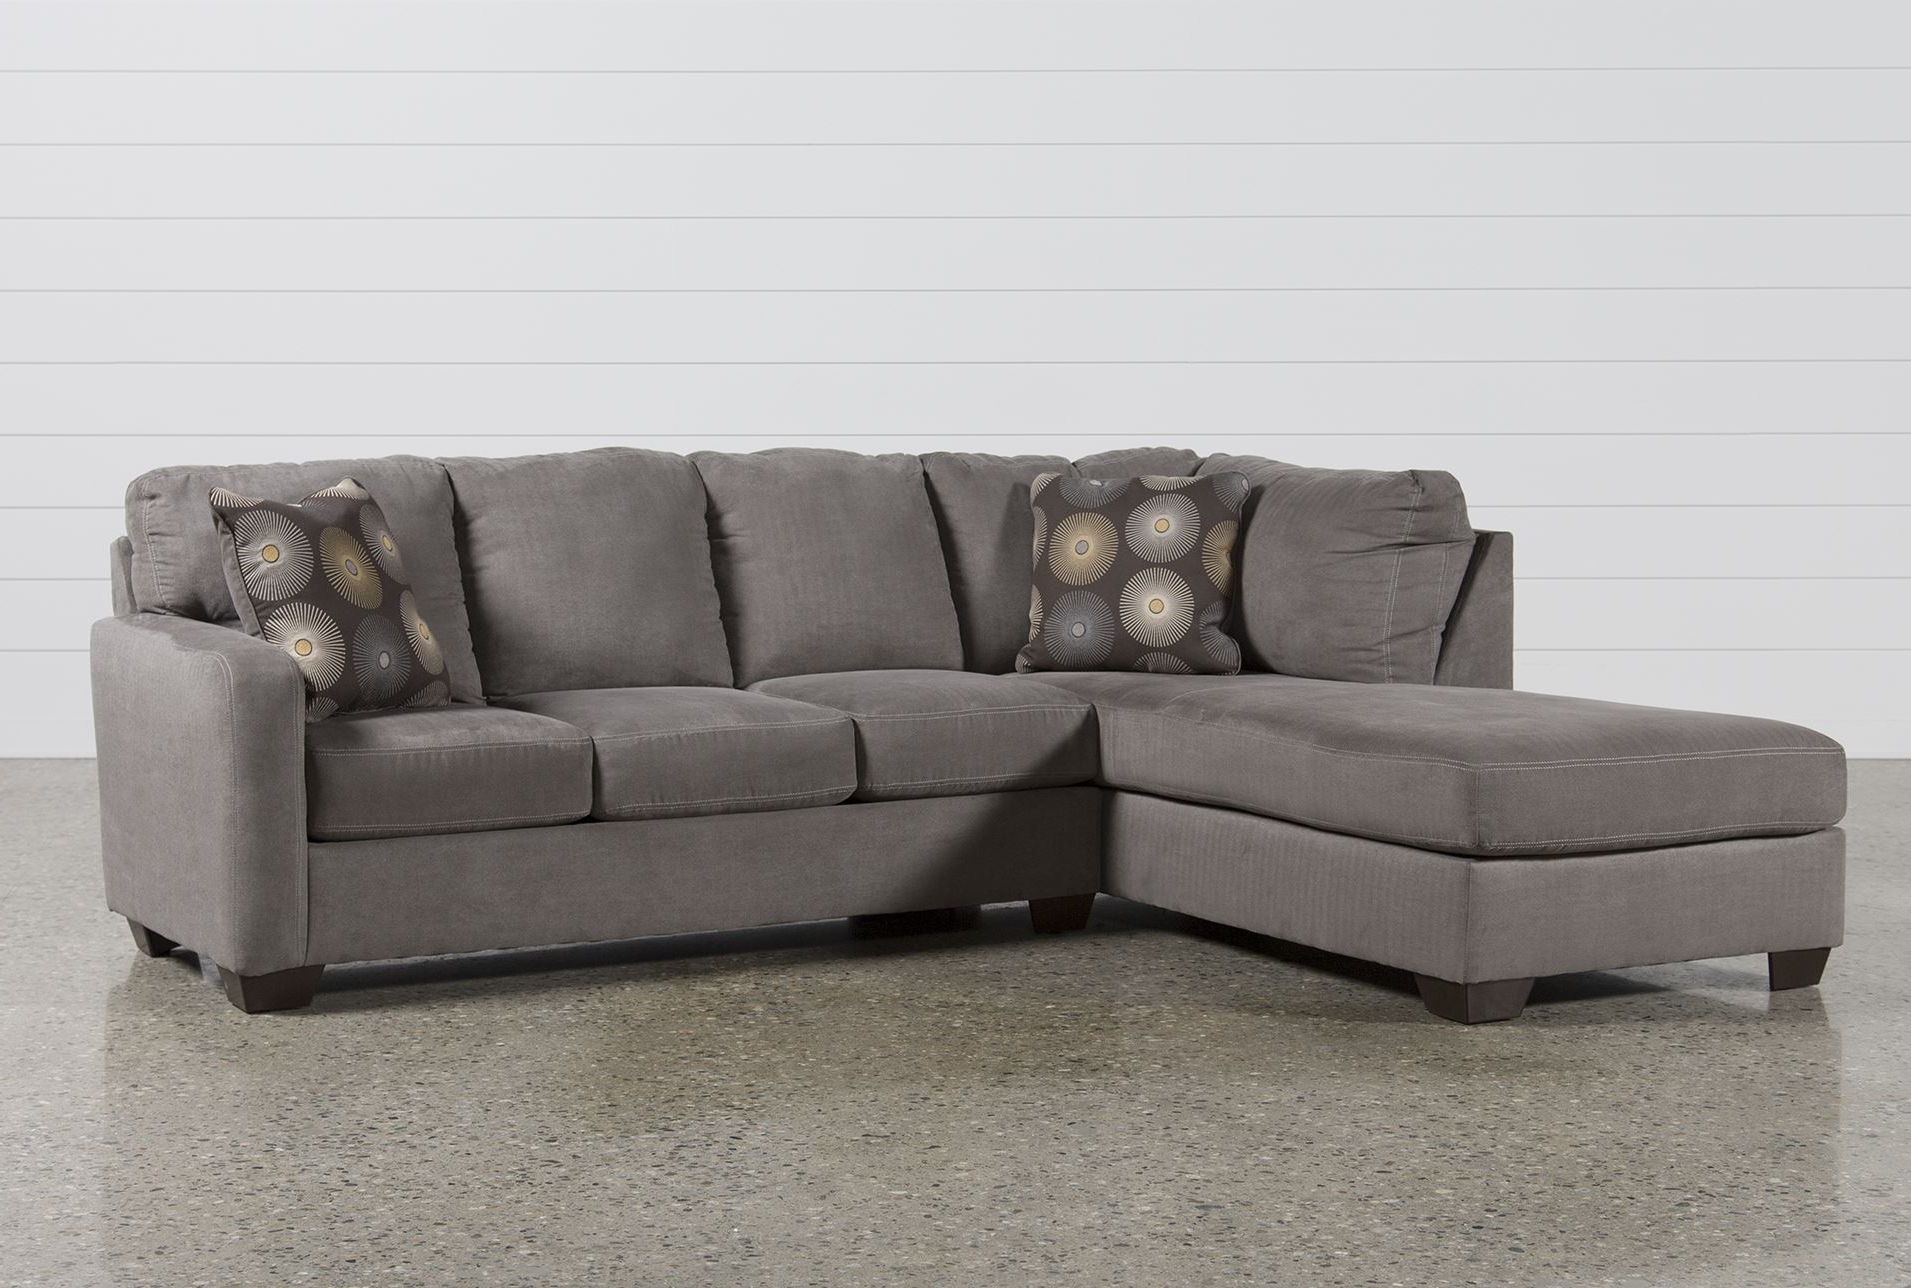 Fashionable Mcdade Graphite 2 Piece Sectionals With Laf Chaise Throughout Grey Sectional Sofa With Chaise (View 6 of 20)